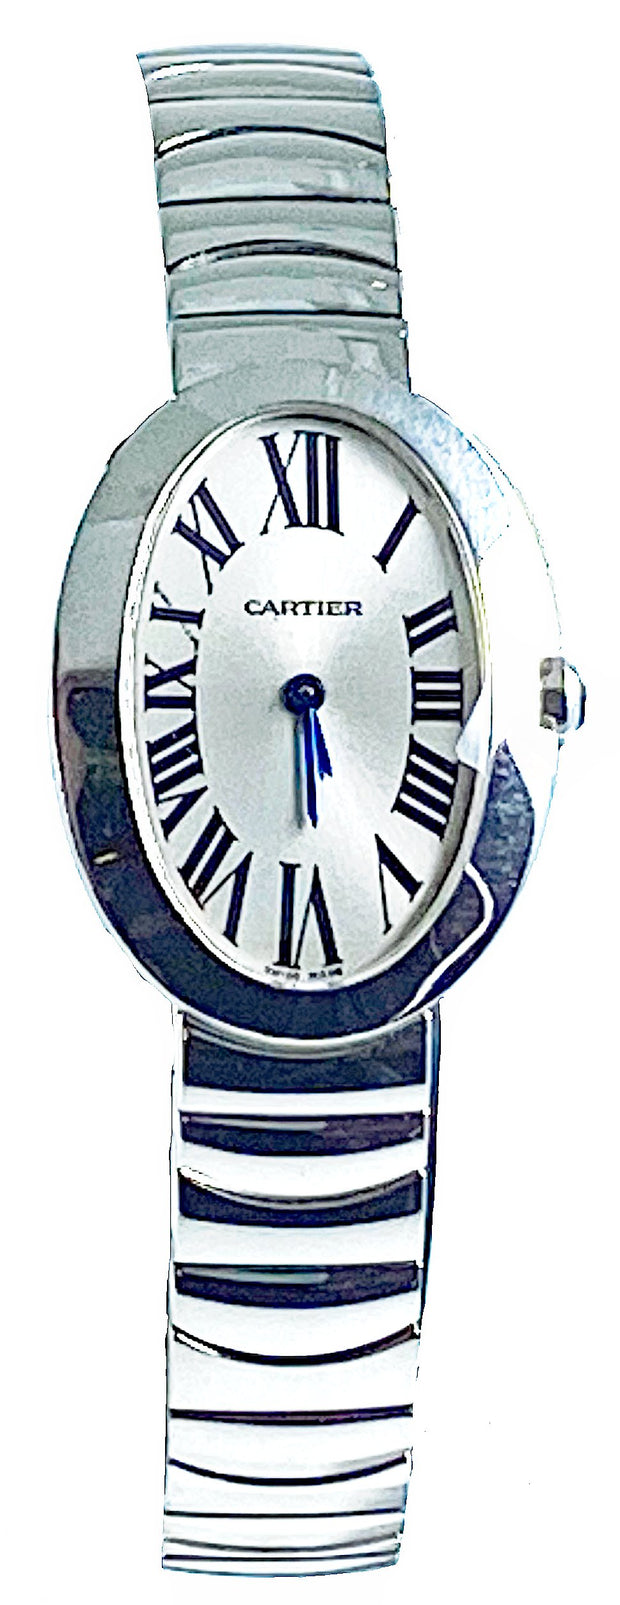 Cartier Baignoire Reference 3065